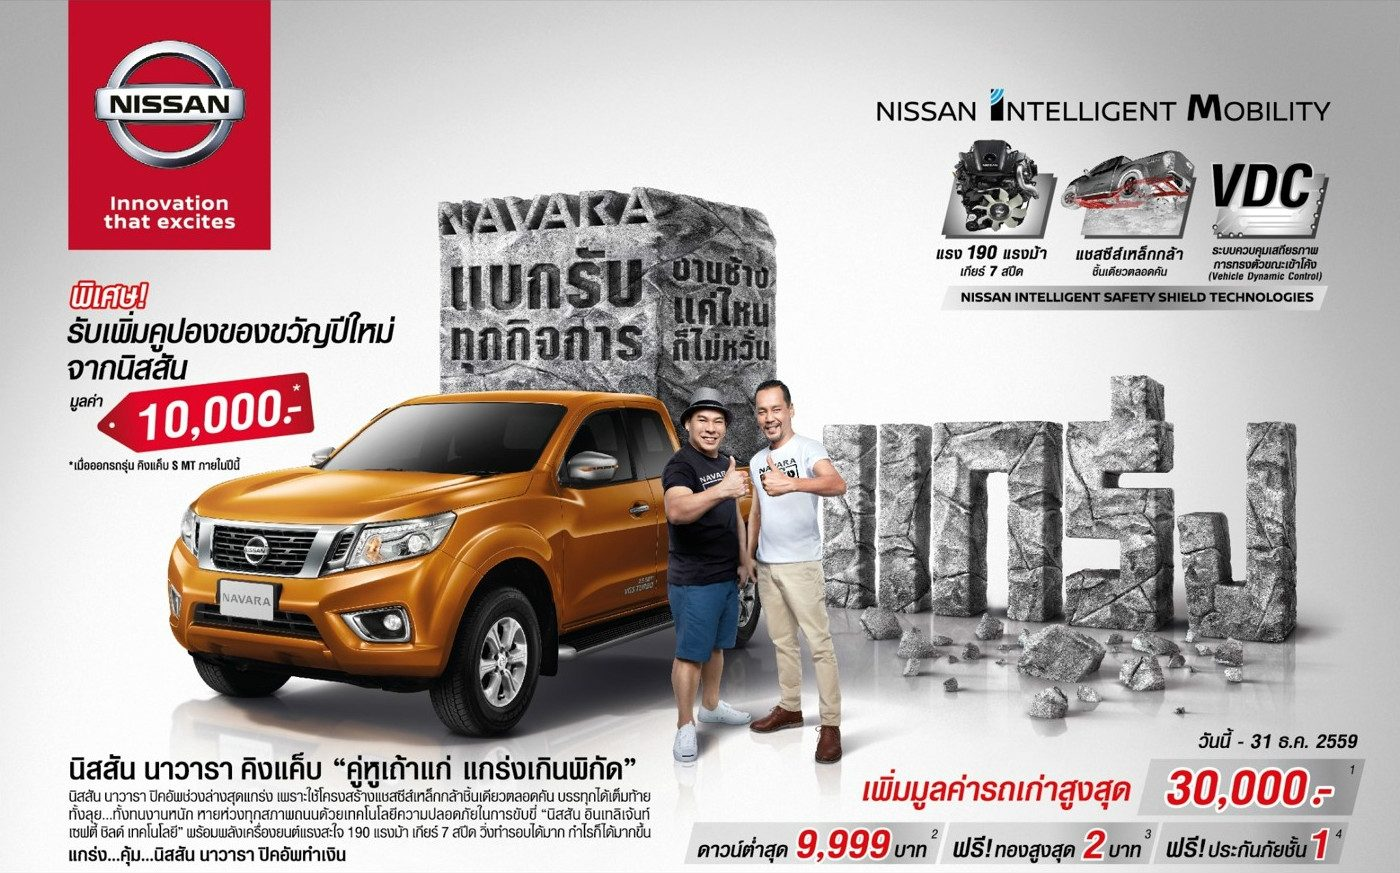 Navara campaign on Dec